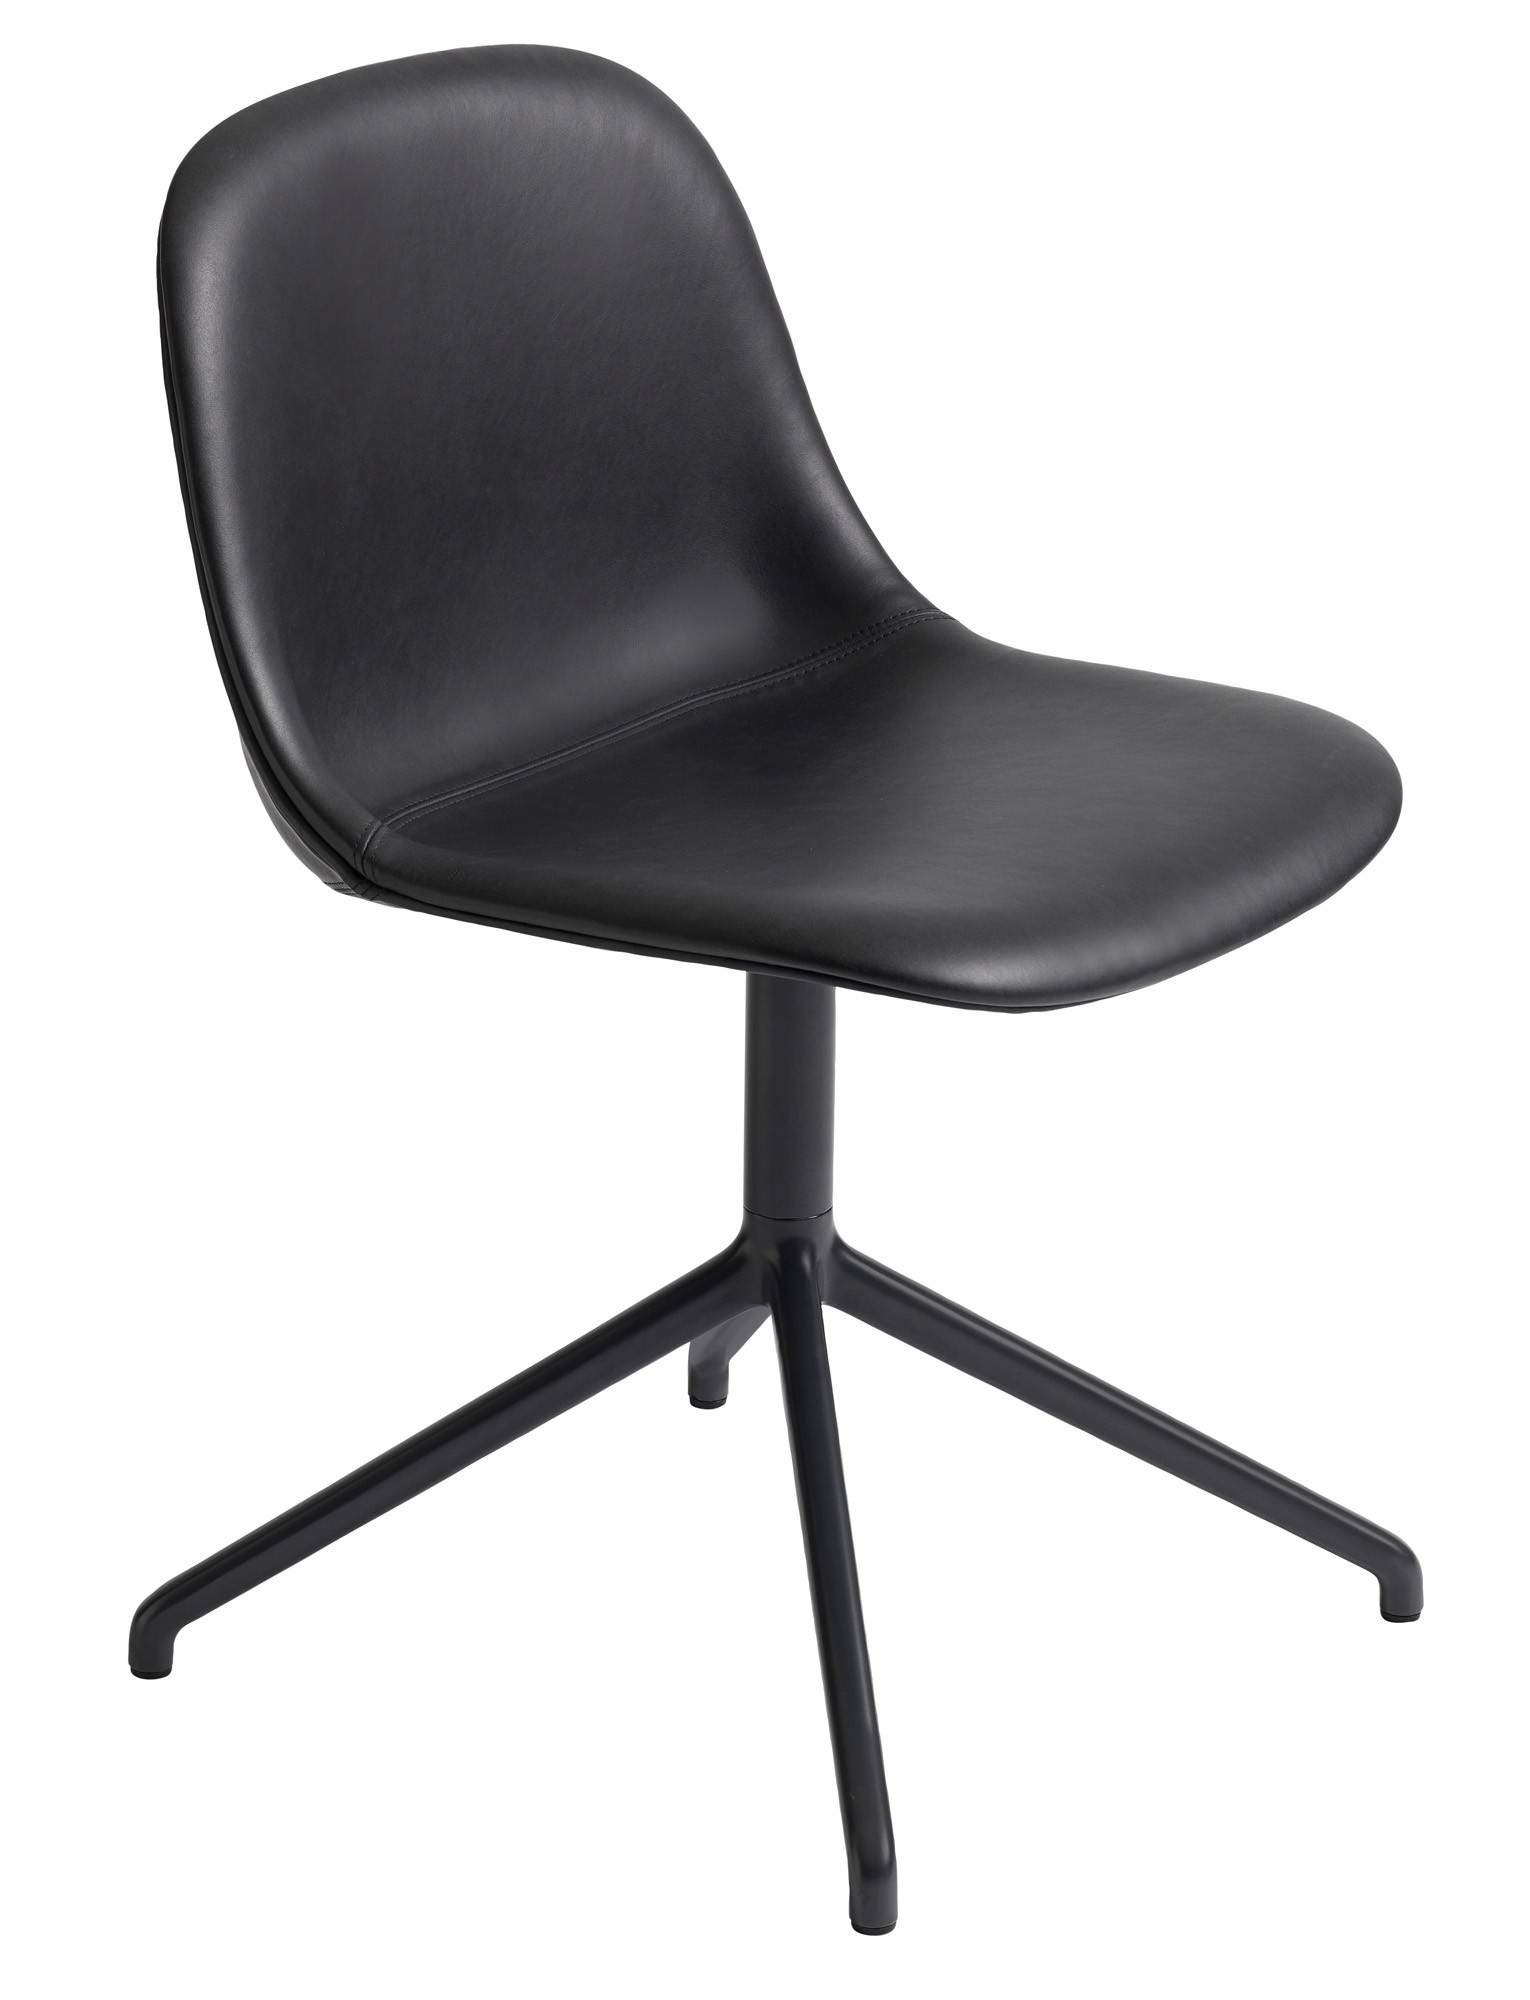 muuto fiber side chair swivel base w o return gr shop canada. Black Bedroom Furniture Sets. Home Design Ideas